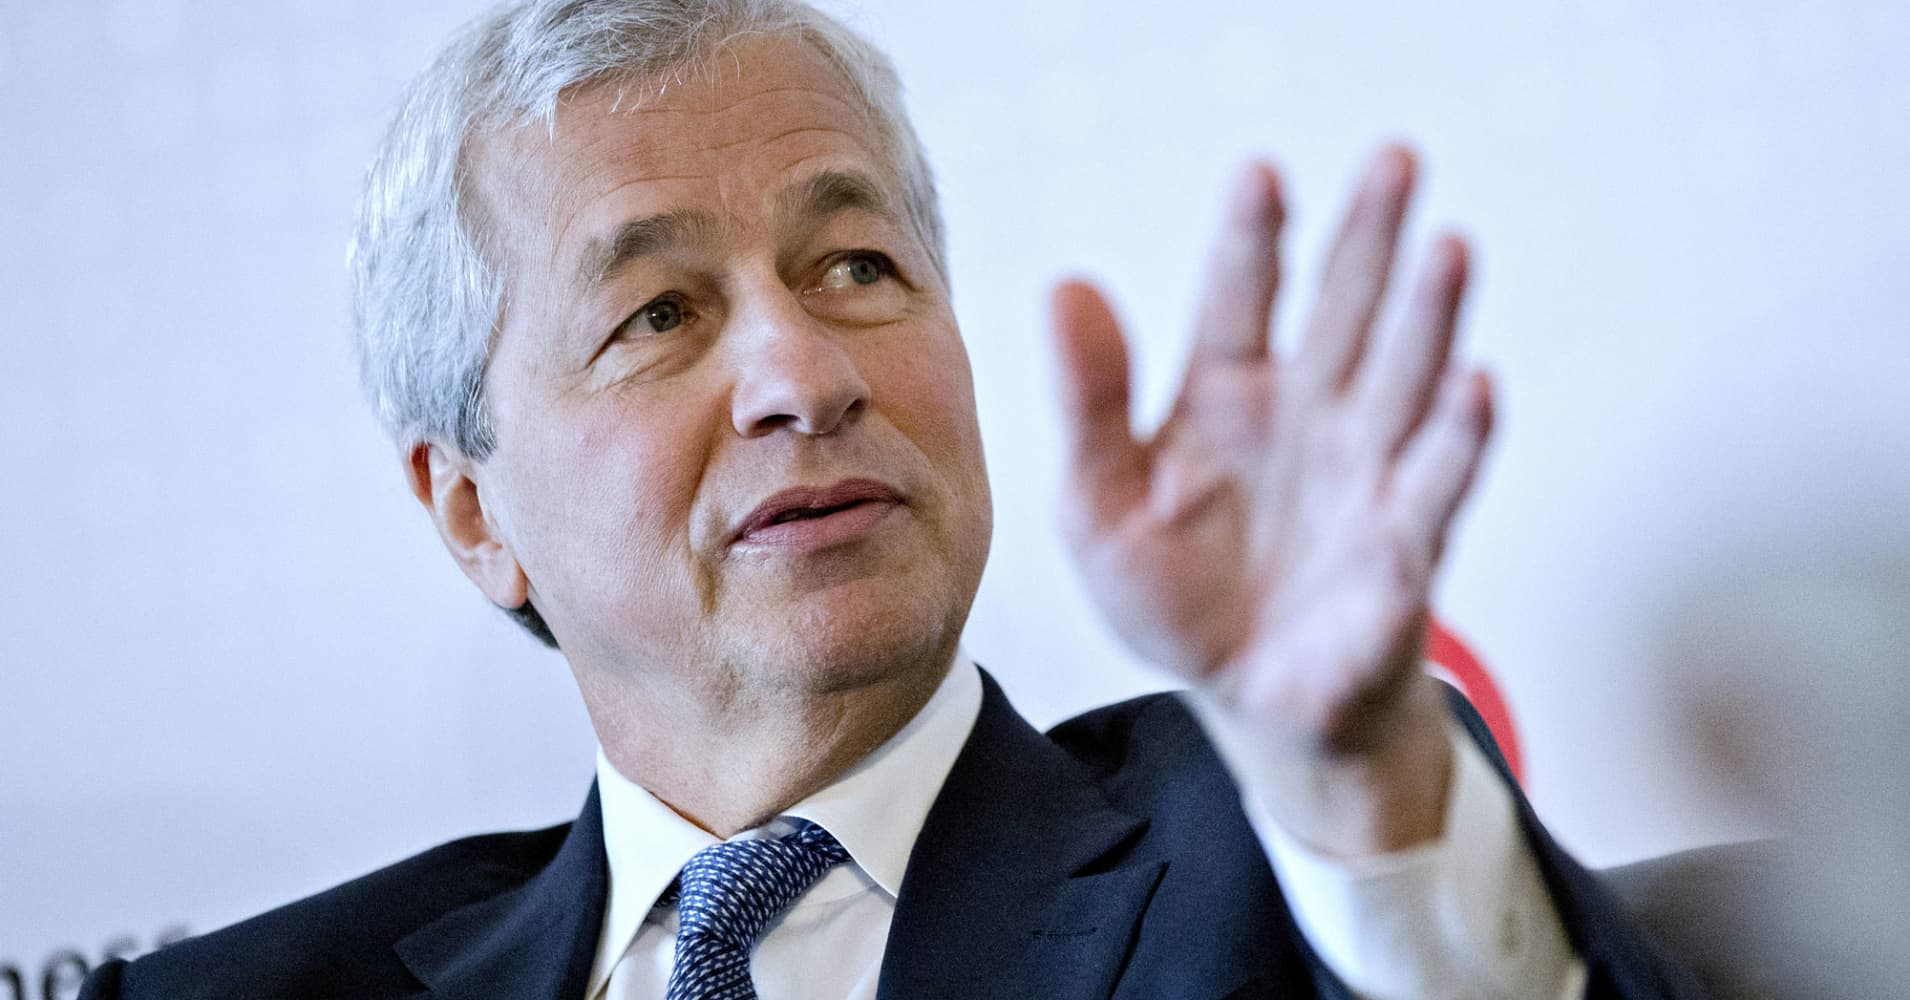 Jamie Dimon says he's not going to talk about bitcoin anymore